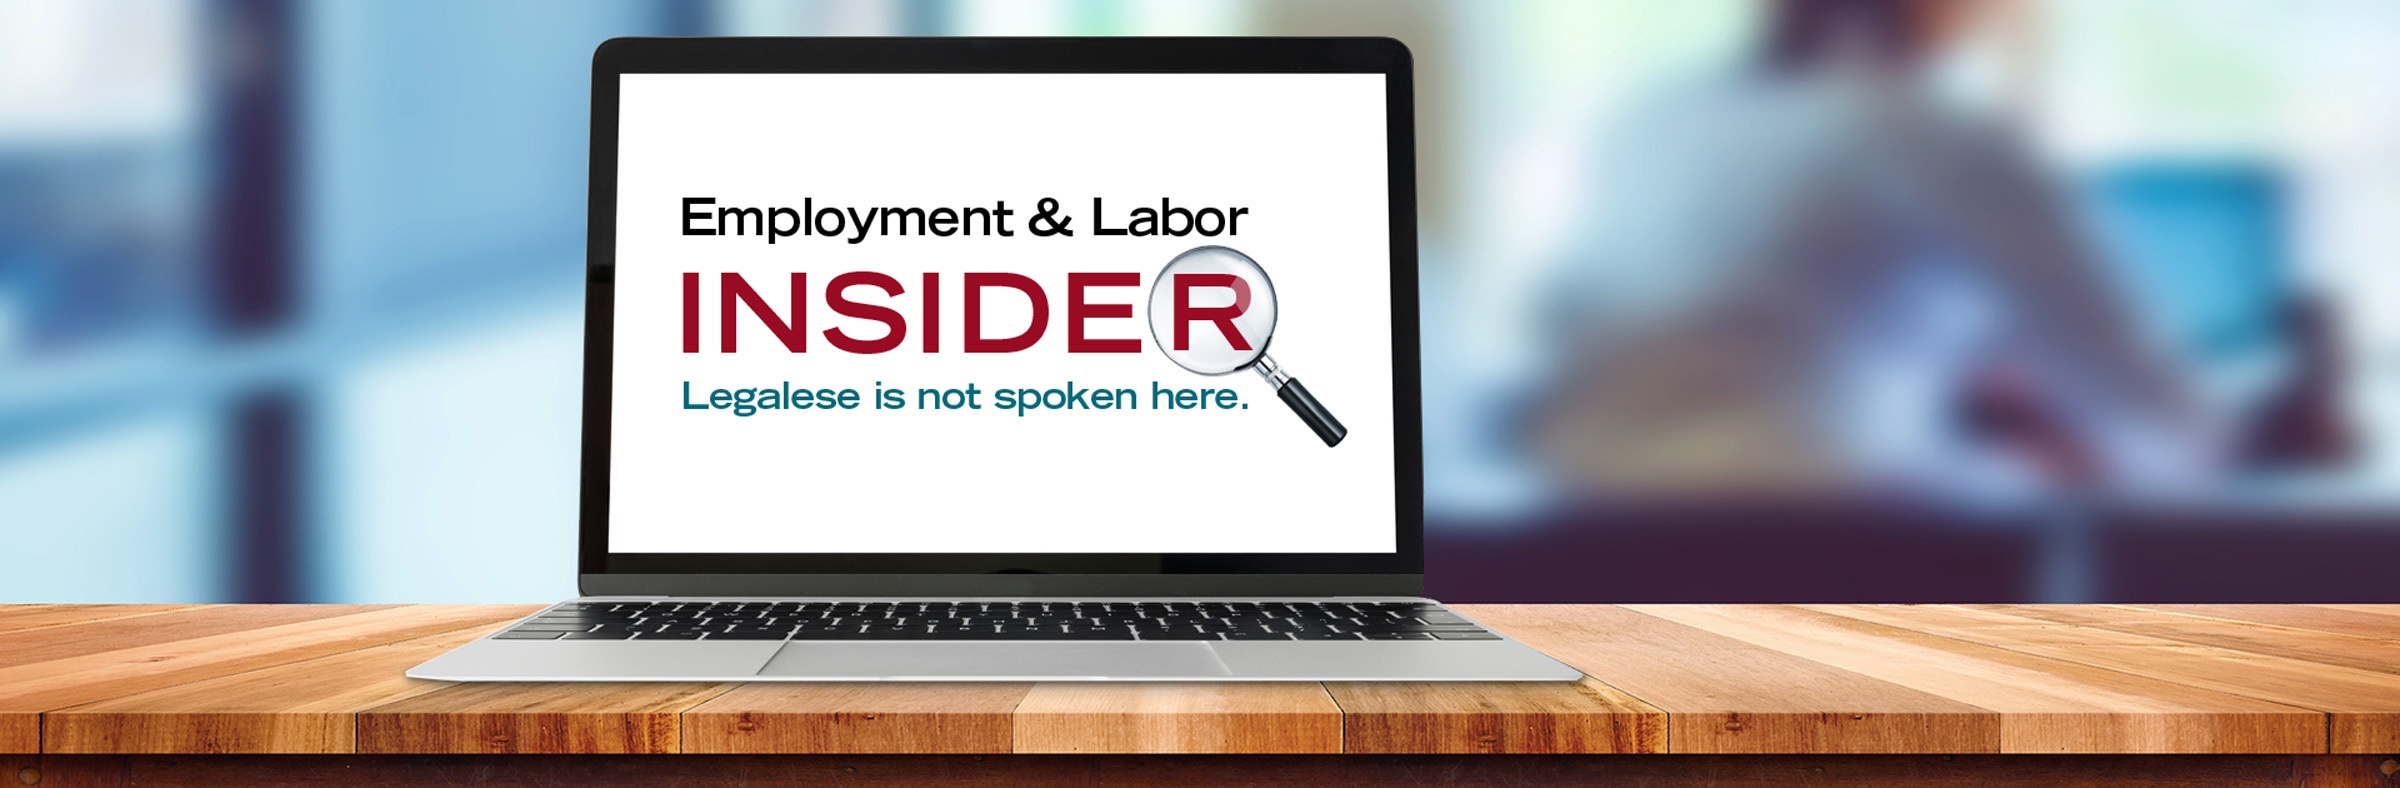 Conservative expression may be unlawful harassment, EEOC